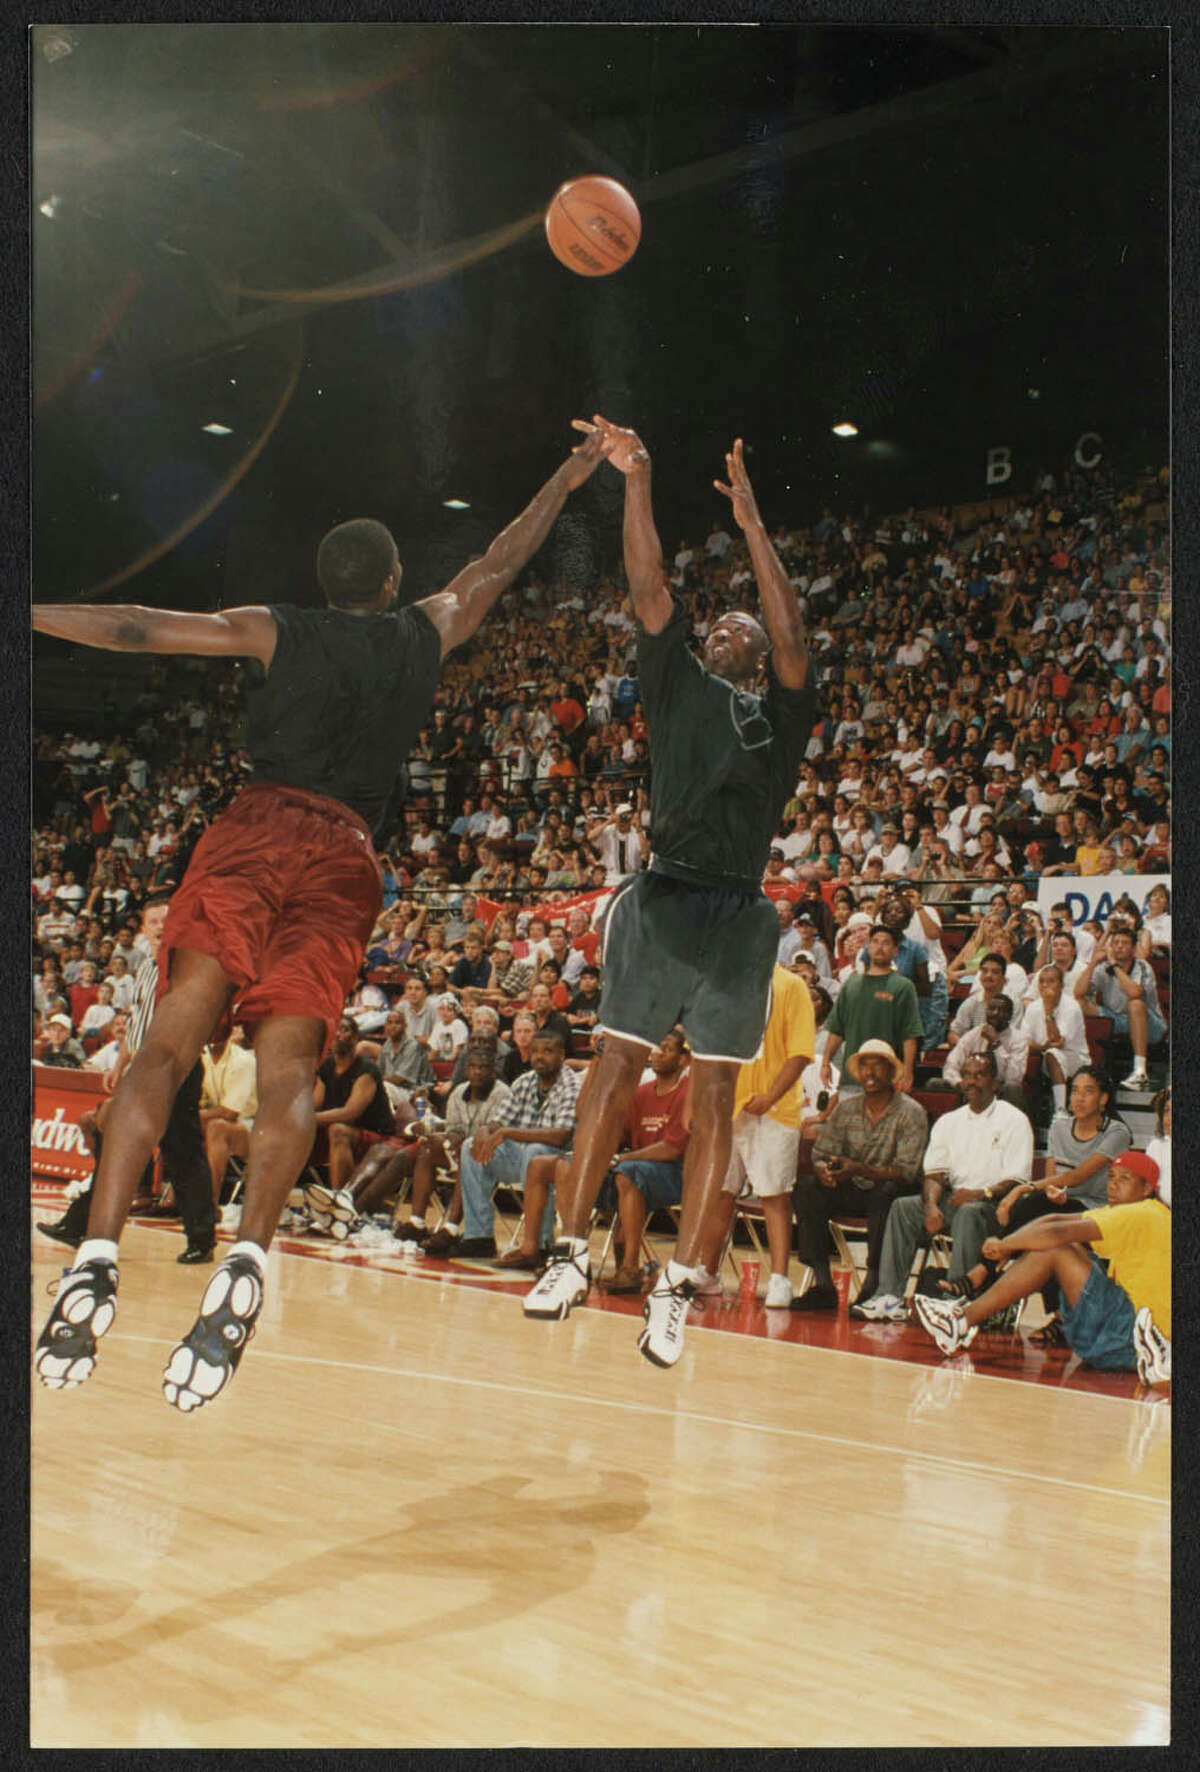 Texas State University dug into the school's archives to share 22-year-old photos showing Jordan playing at Strahan Coliseum for a charity event. The university shared a few more photos with mySA in addition to those shots that were tweeted over the weekend. The photos show a then 35-year-old Jordan participating in the June 22, 1998,